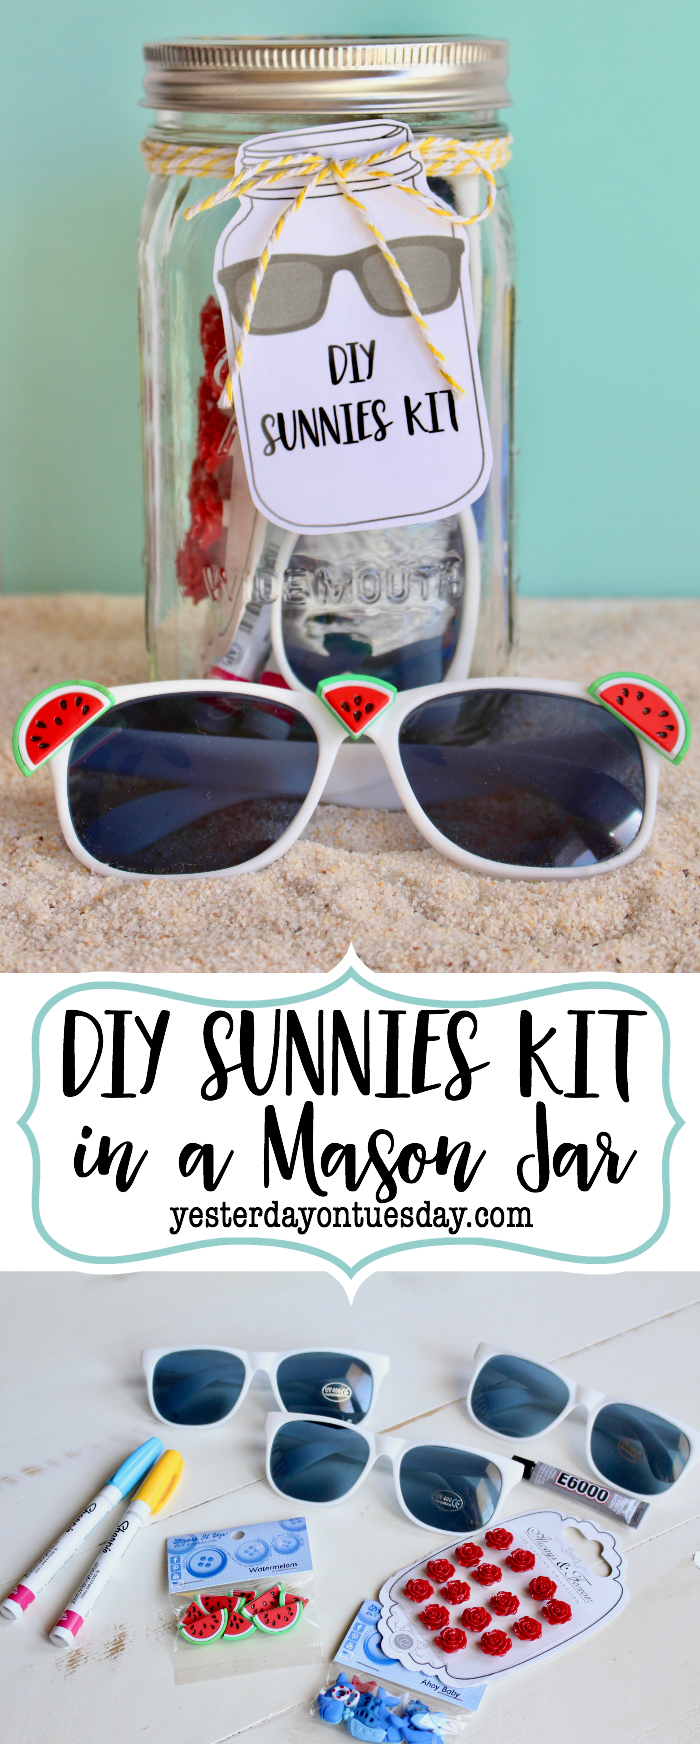 DIY Sunglasses Kit in a Mason Jar